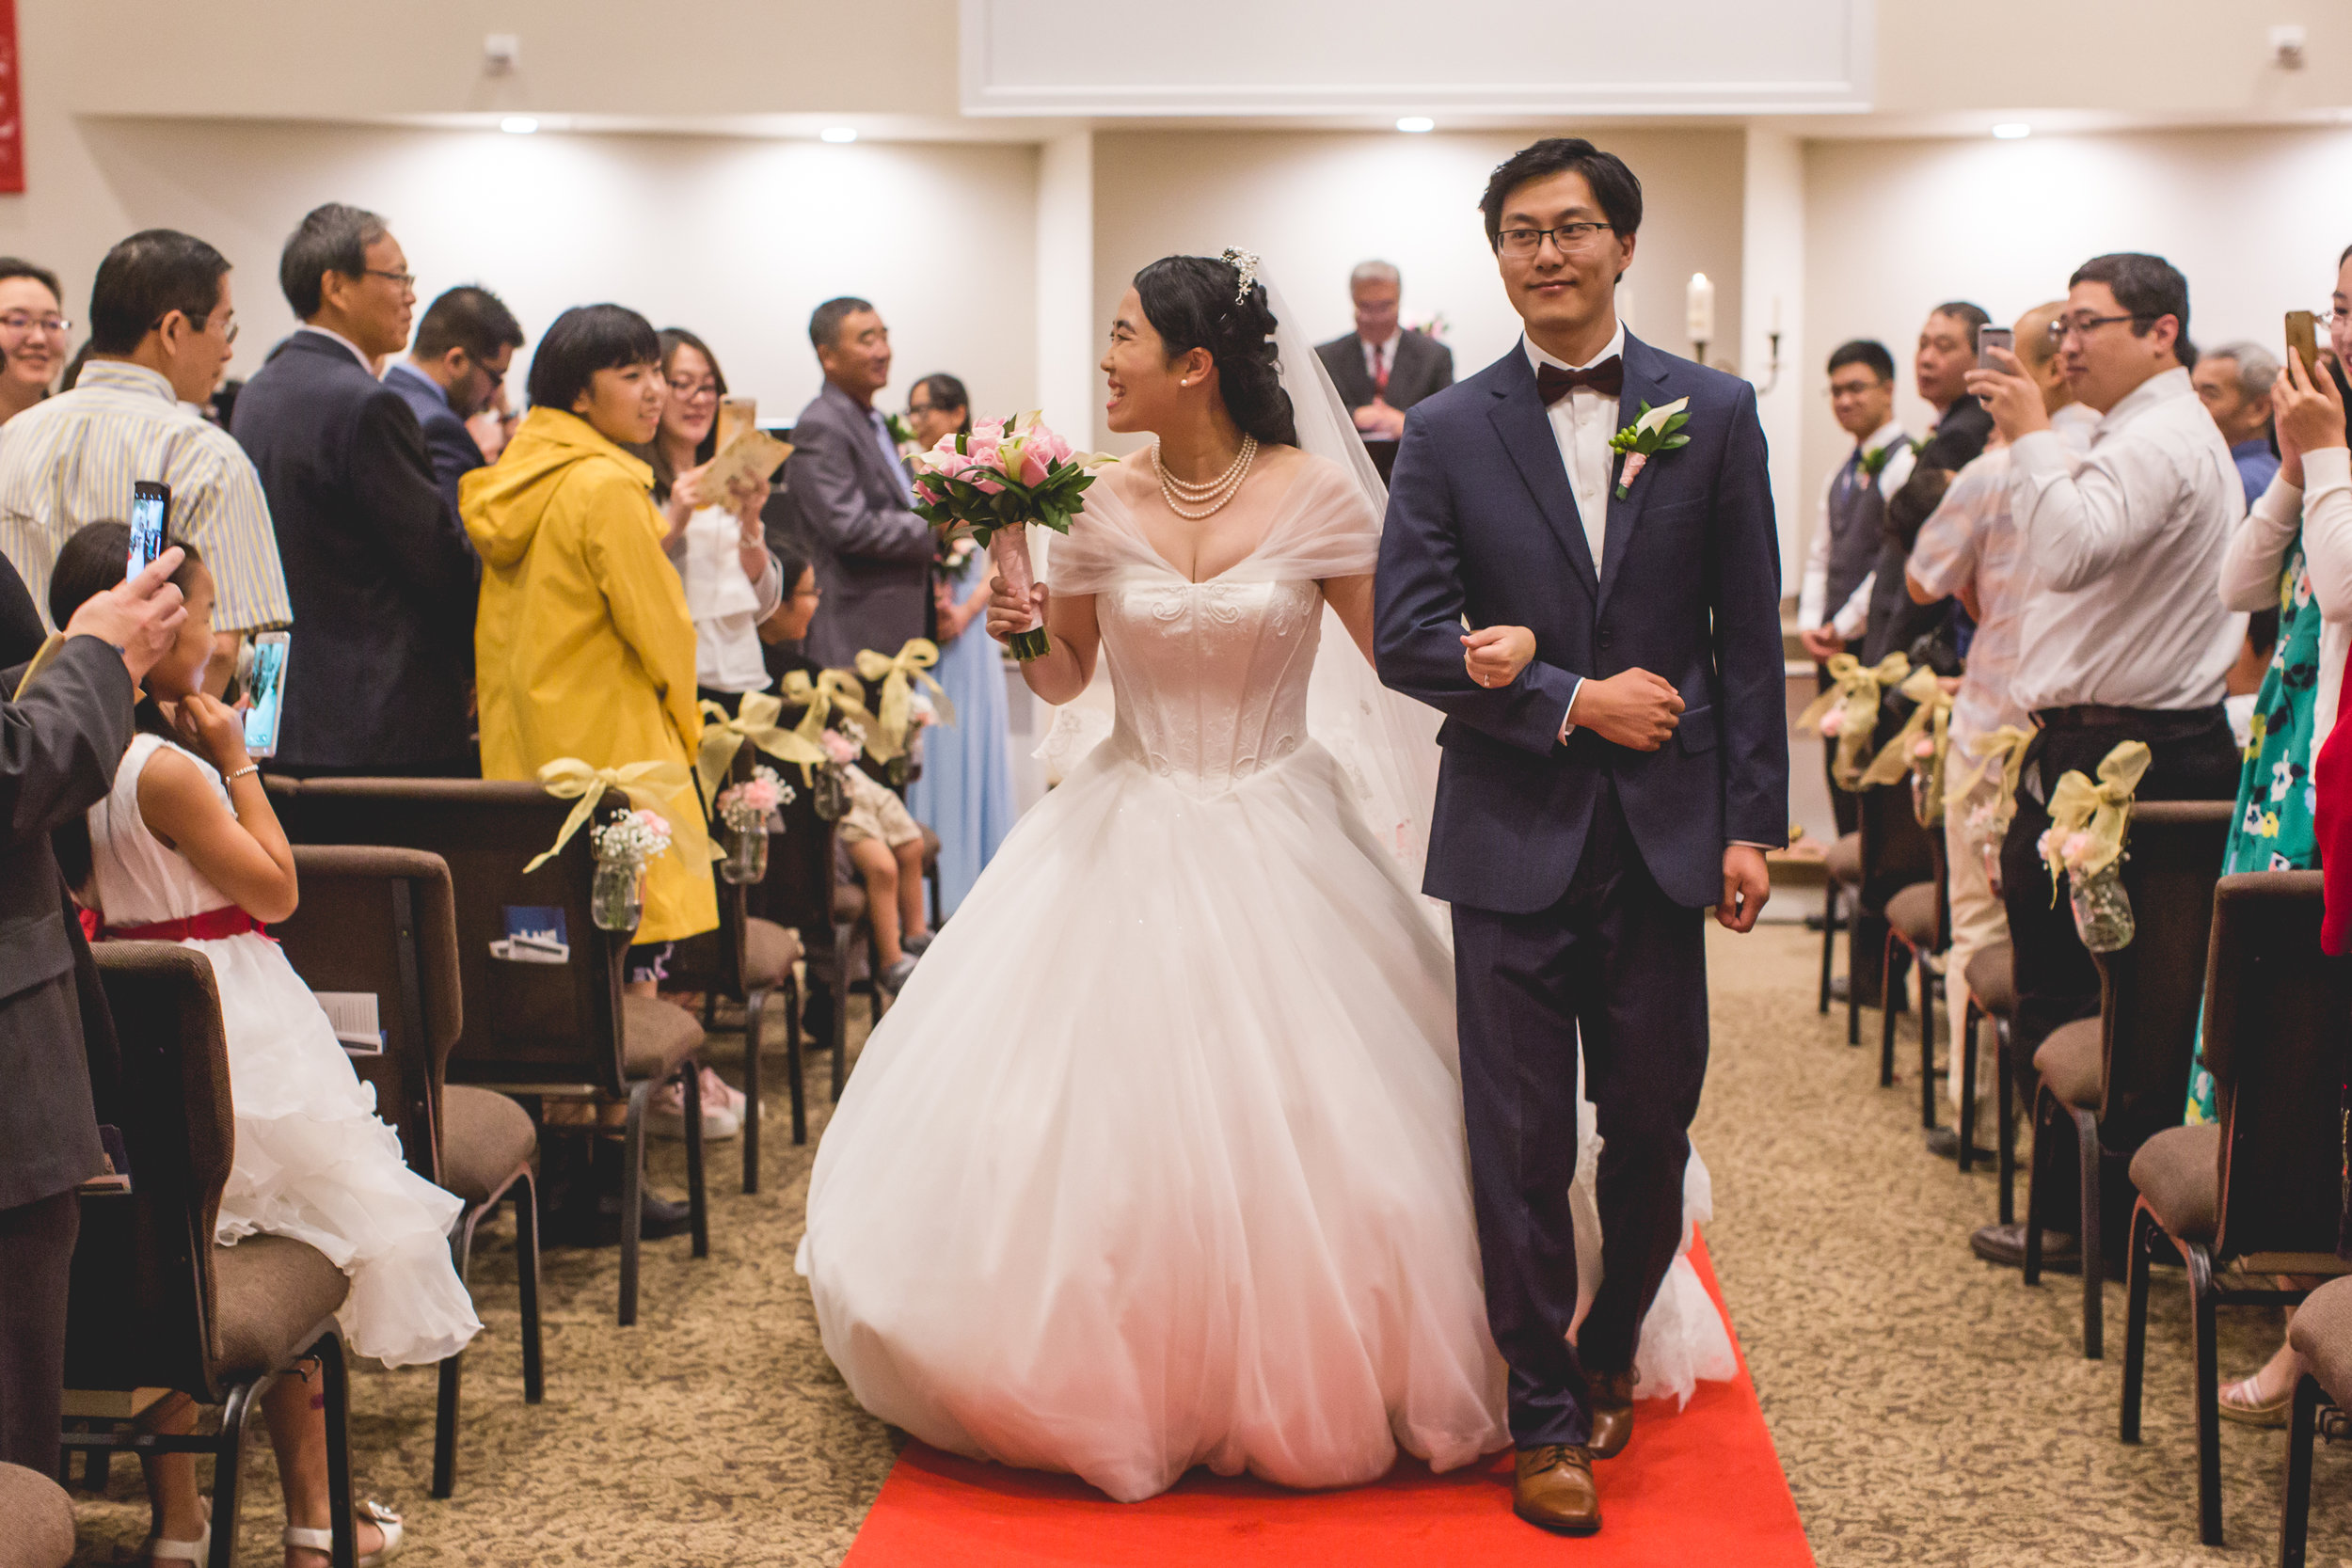 hongye wedding blog-261.jpg